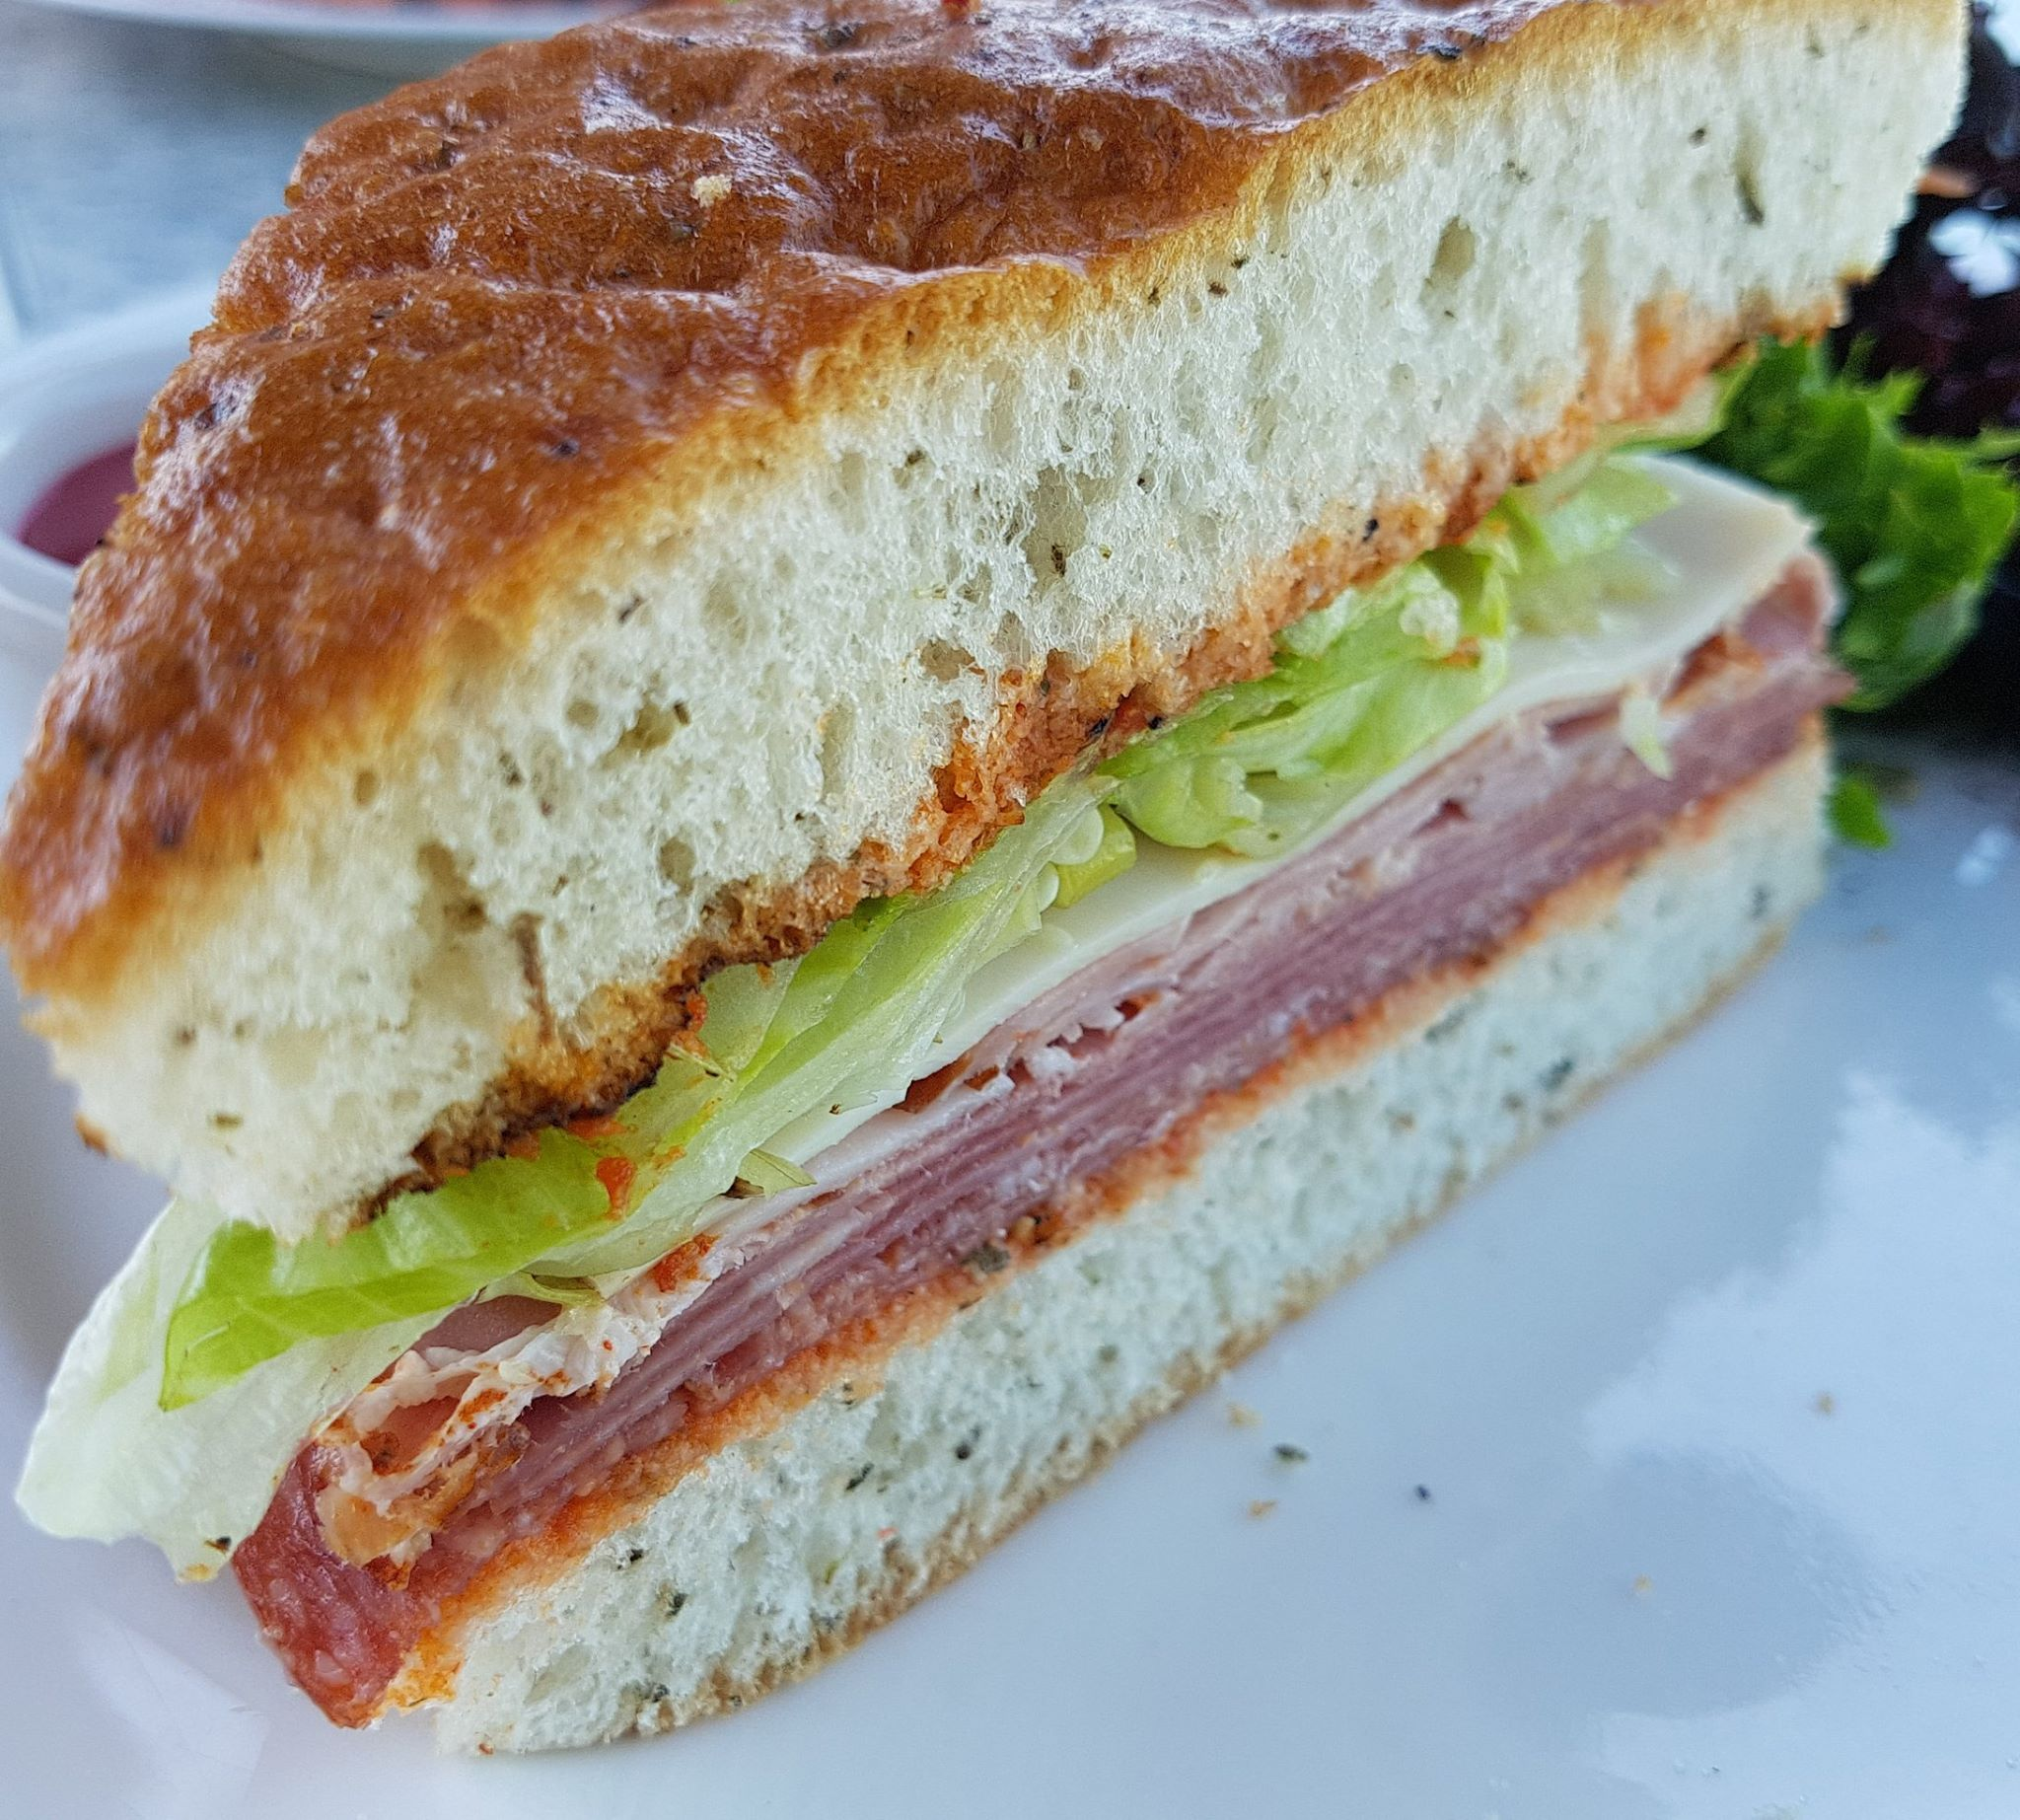 Italian Deli Cold Cut Sandwich